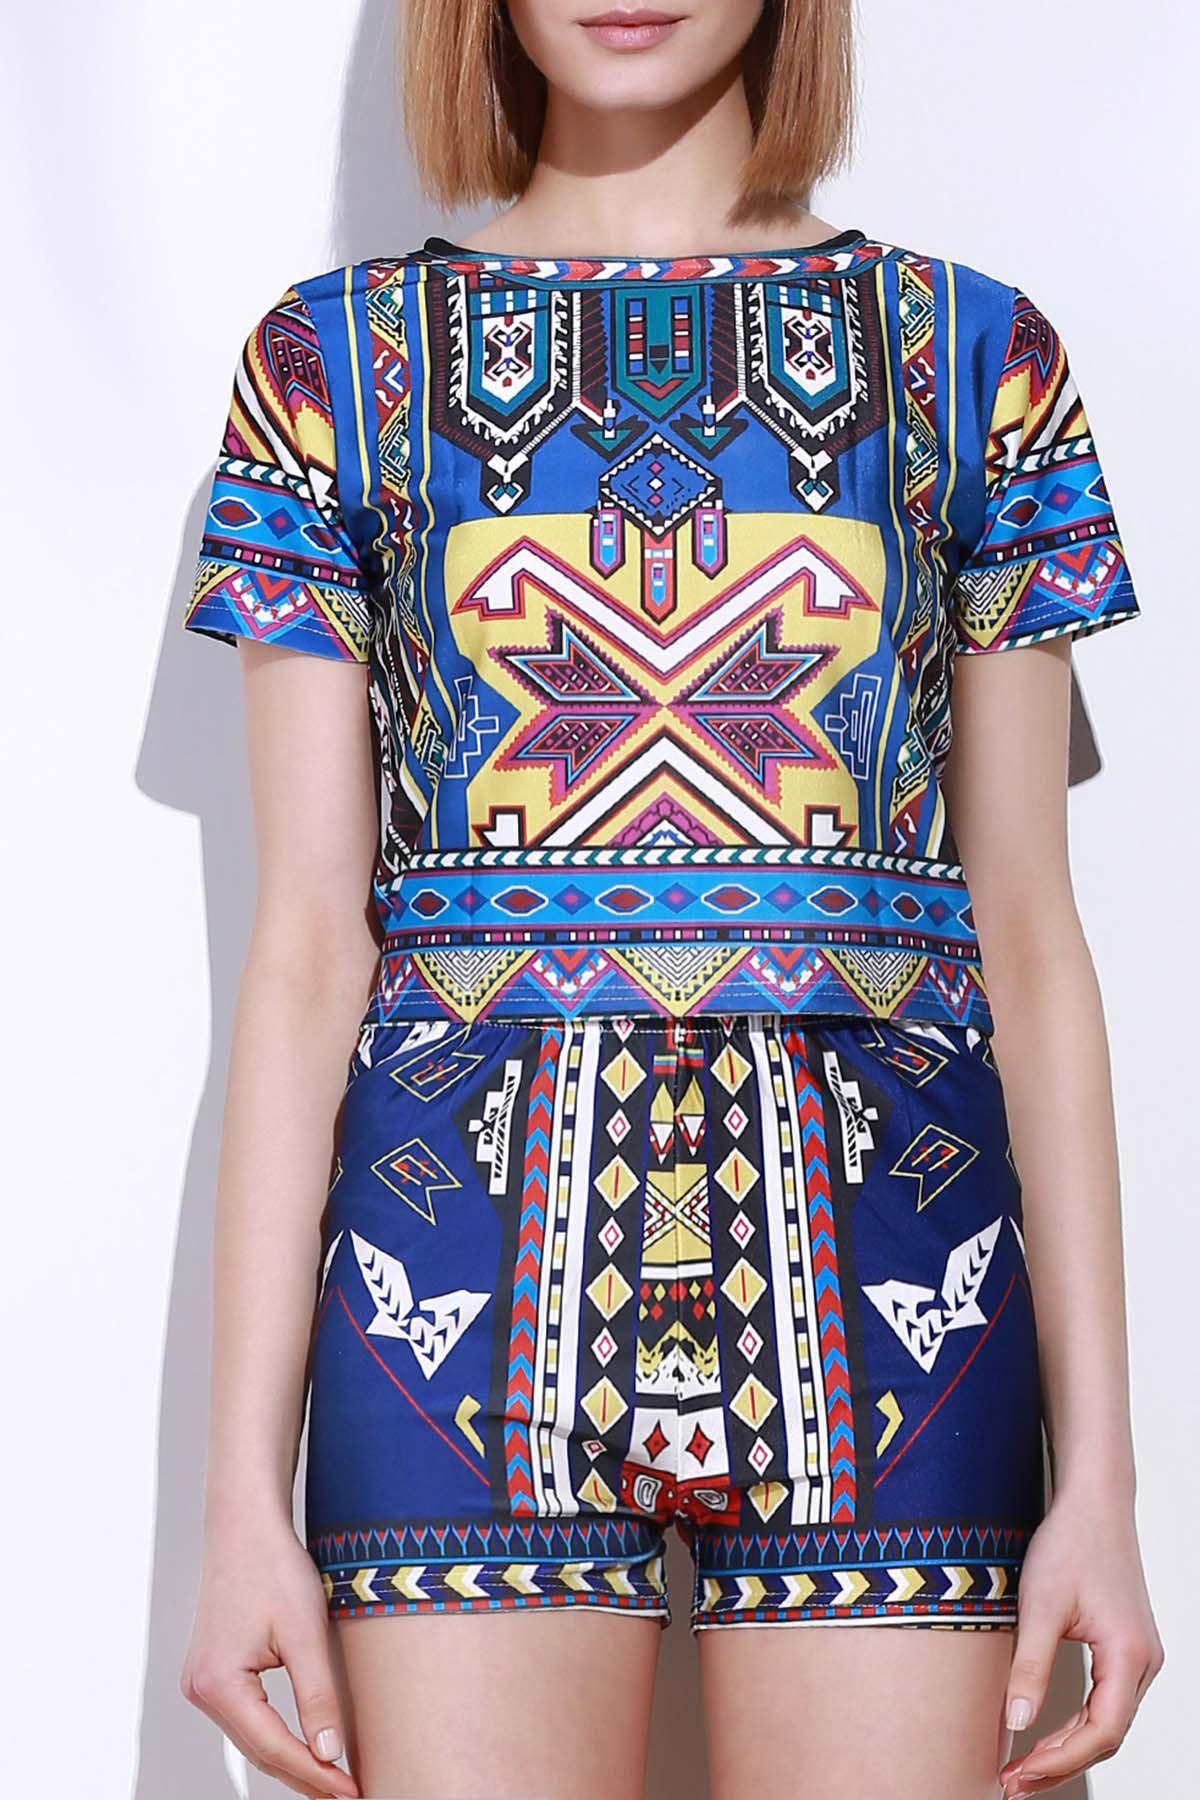 Ethnic Style Geometric Printed Short T-Shirt+High Waist Shorts Twinset For Women - COLORMIX XL